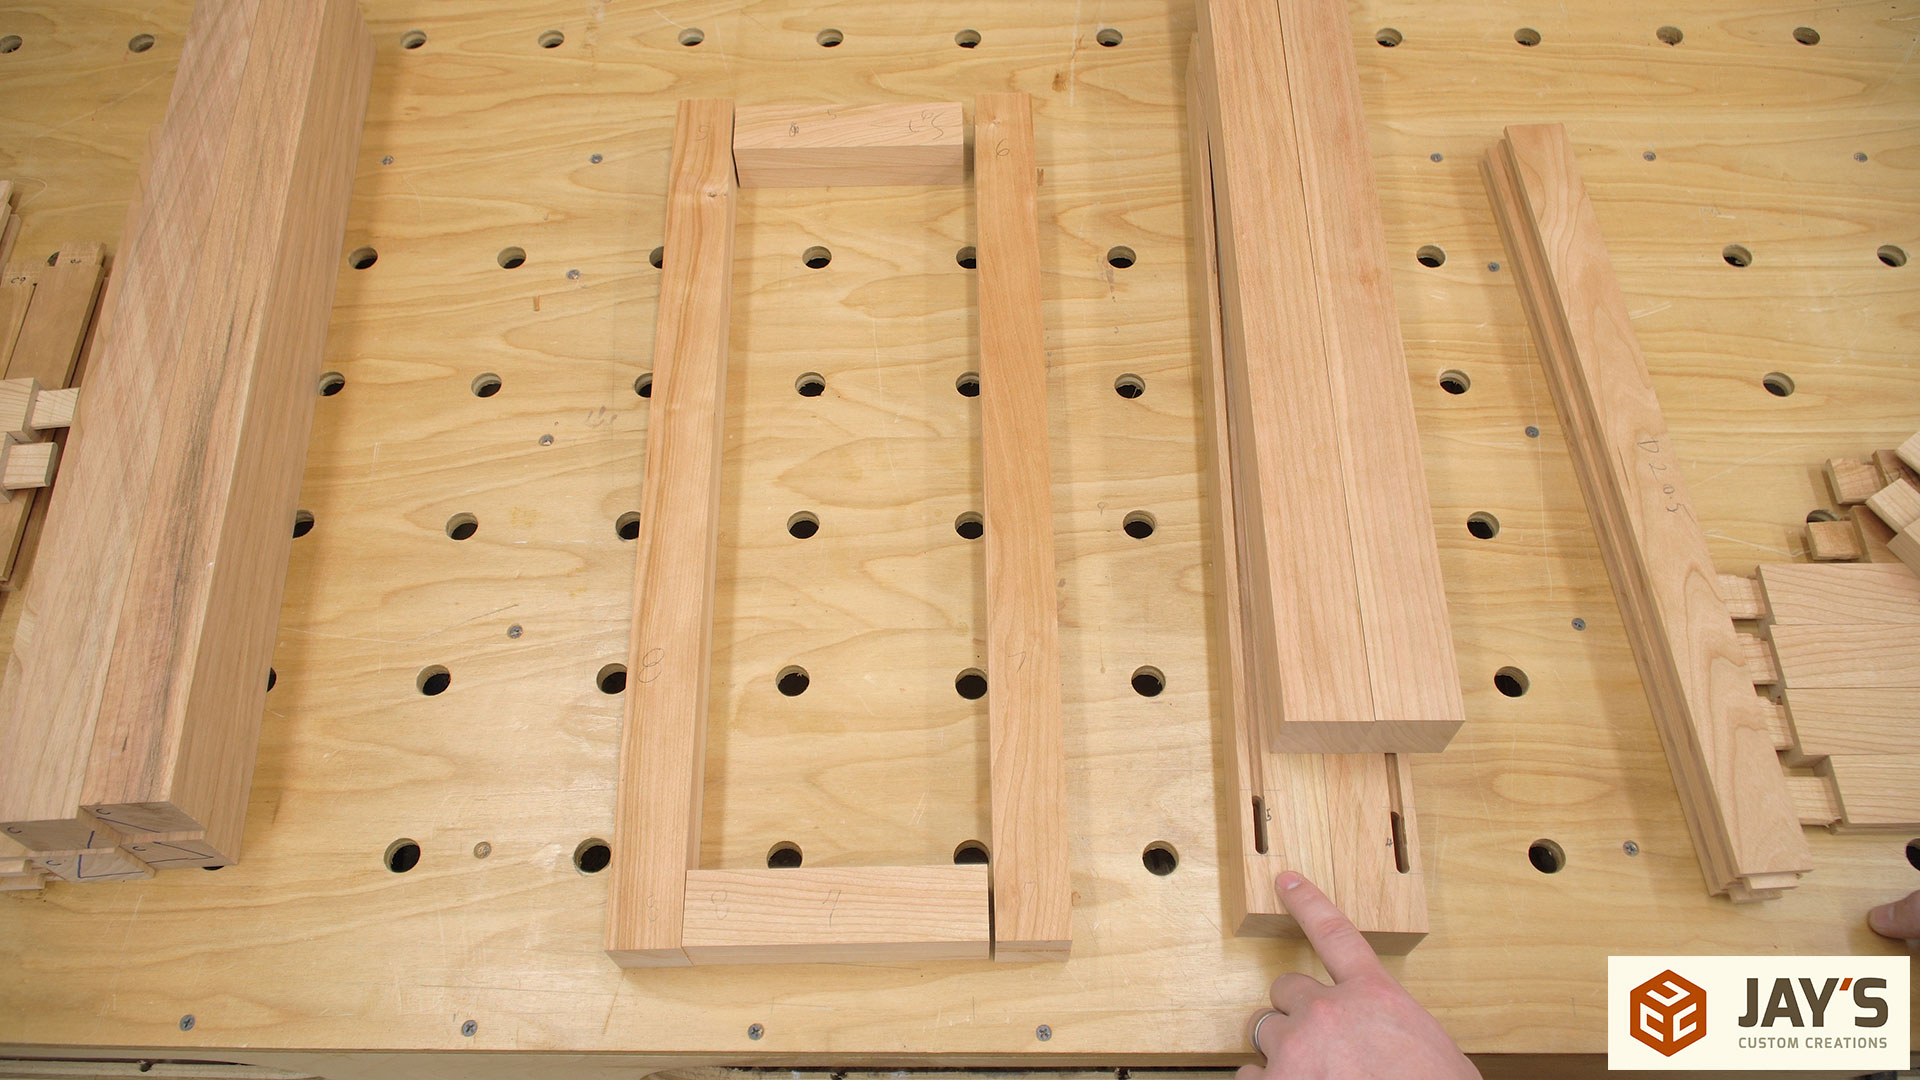 Tongue And Groove Joinery With A Router Table Or A Table Saw